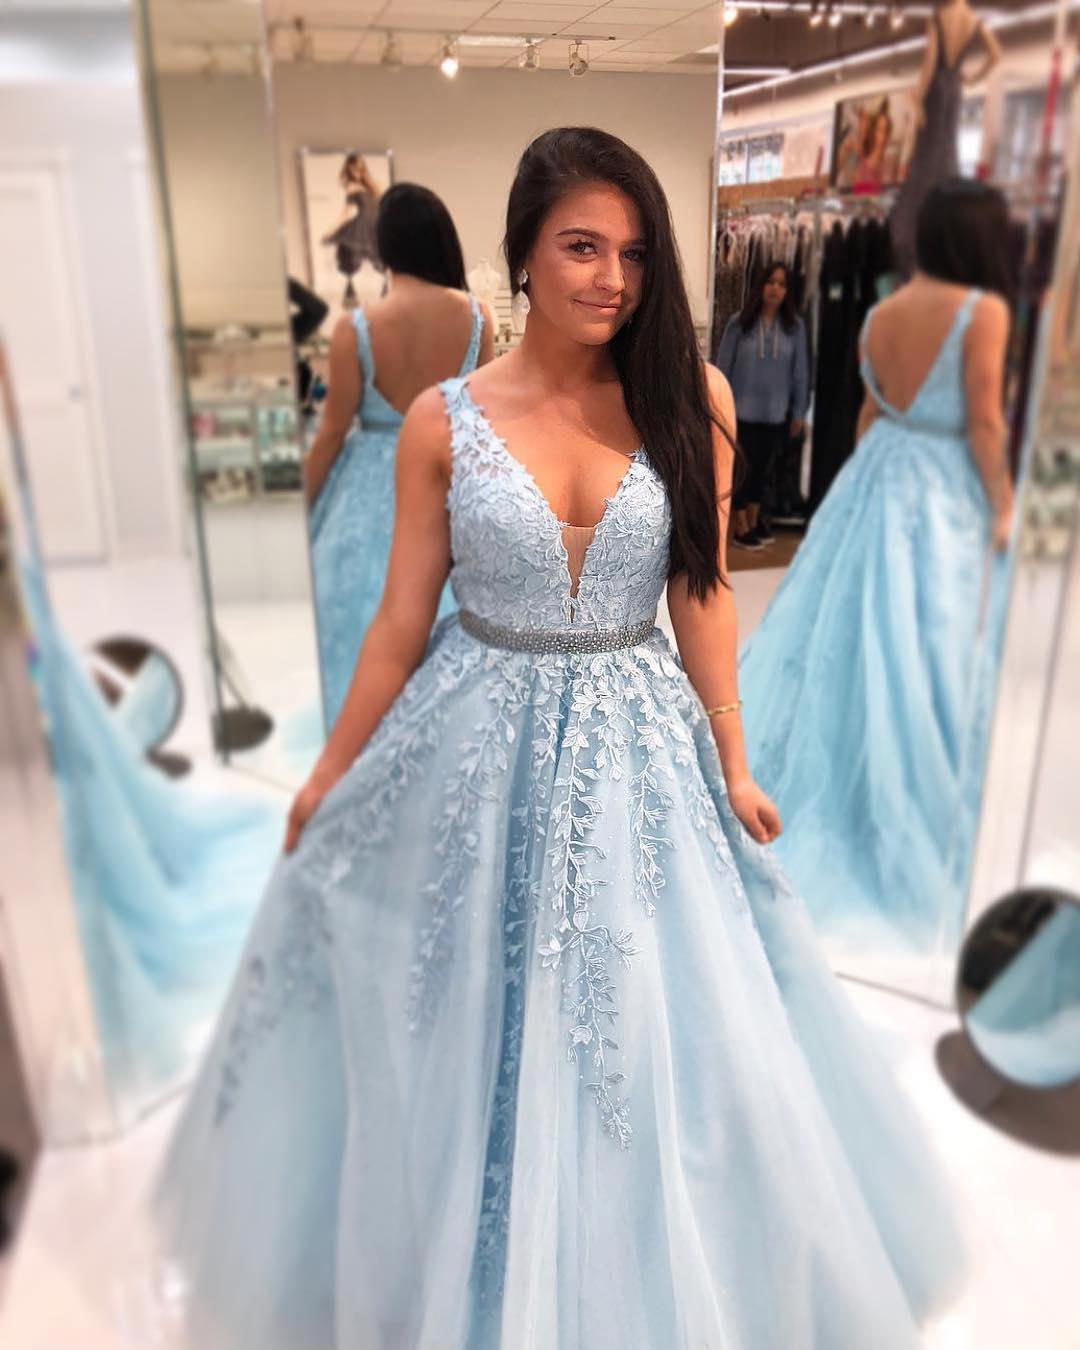 Fancy Fashion Dress Party Inspiration - All Wedding Dresses ...